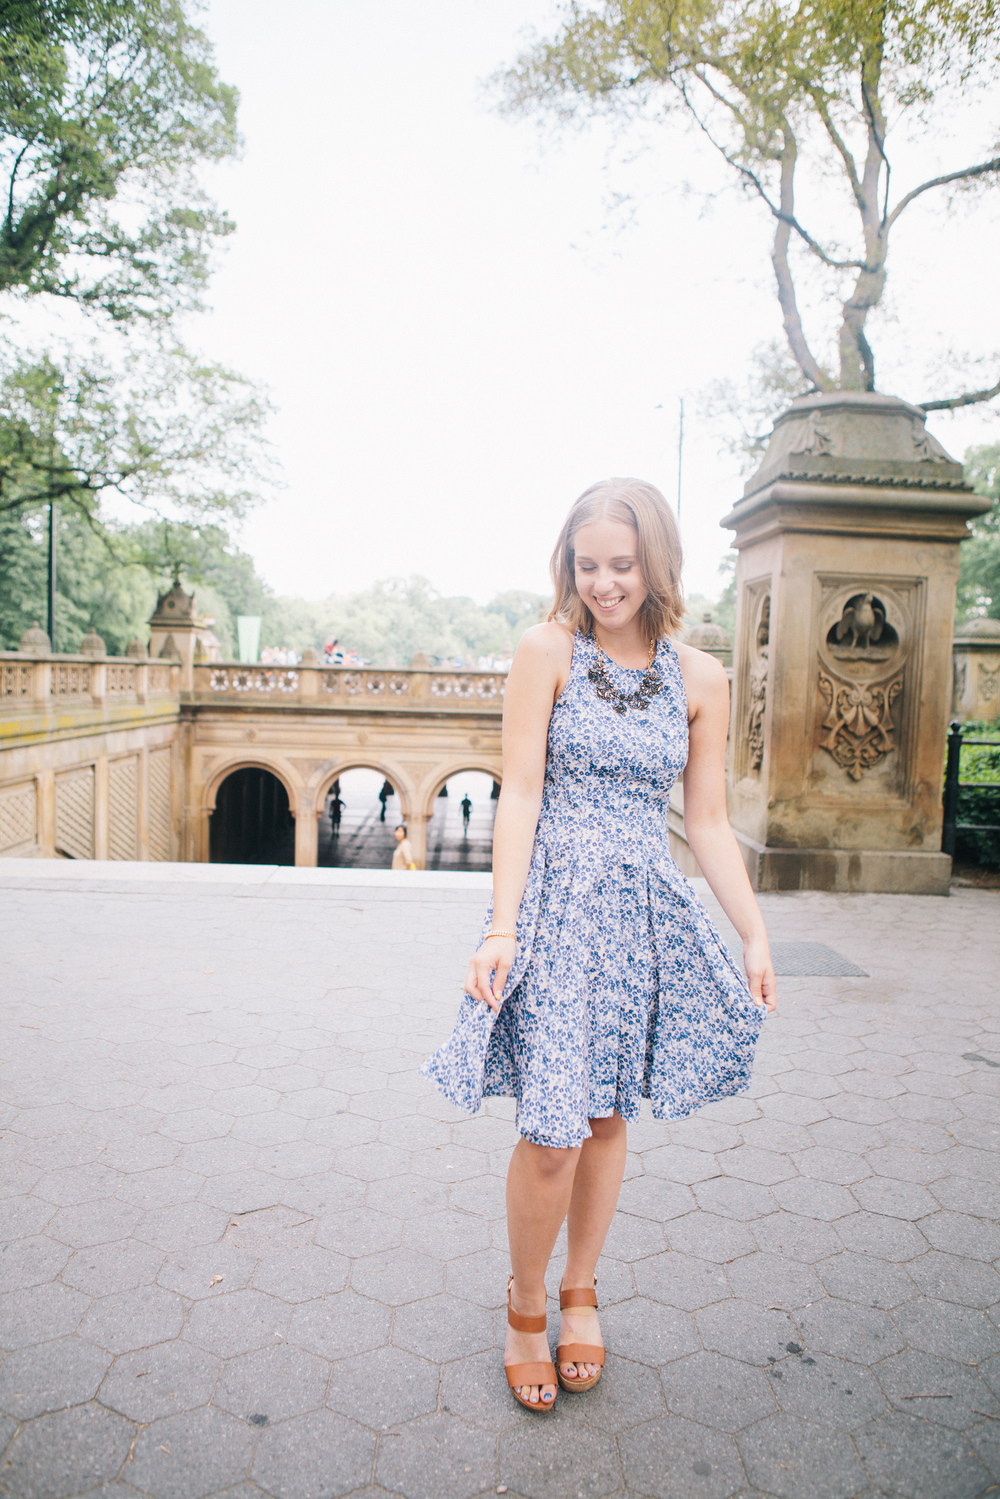 Flytographer Vacation Photographer in New York - Samantha